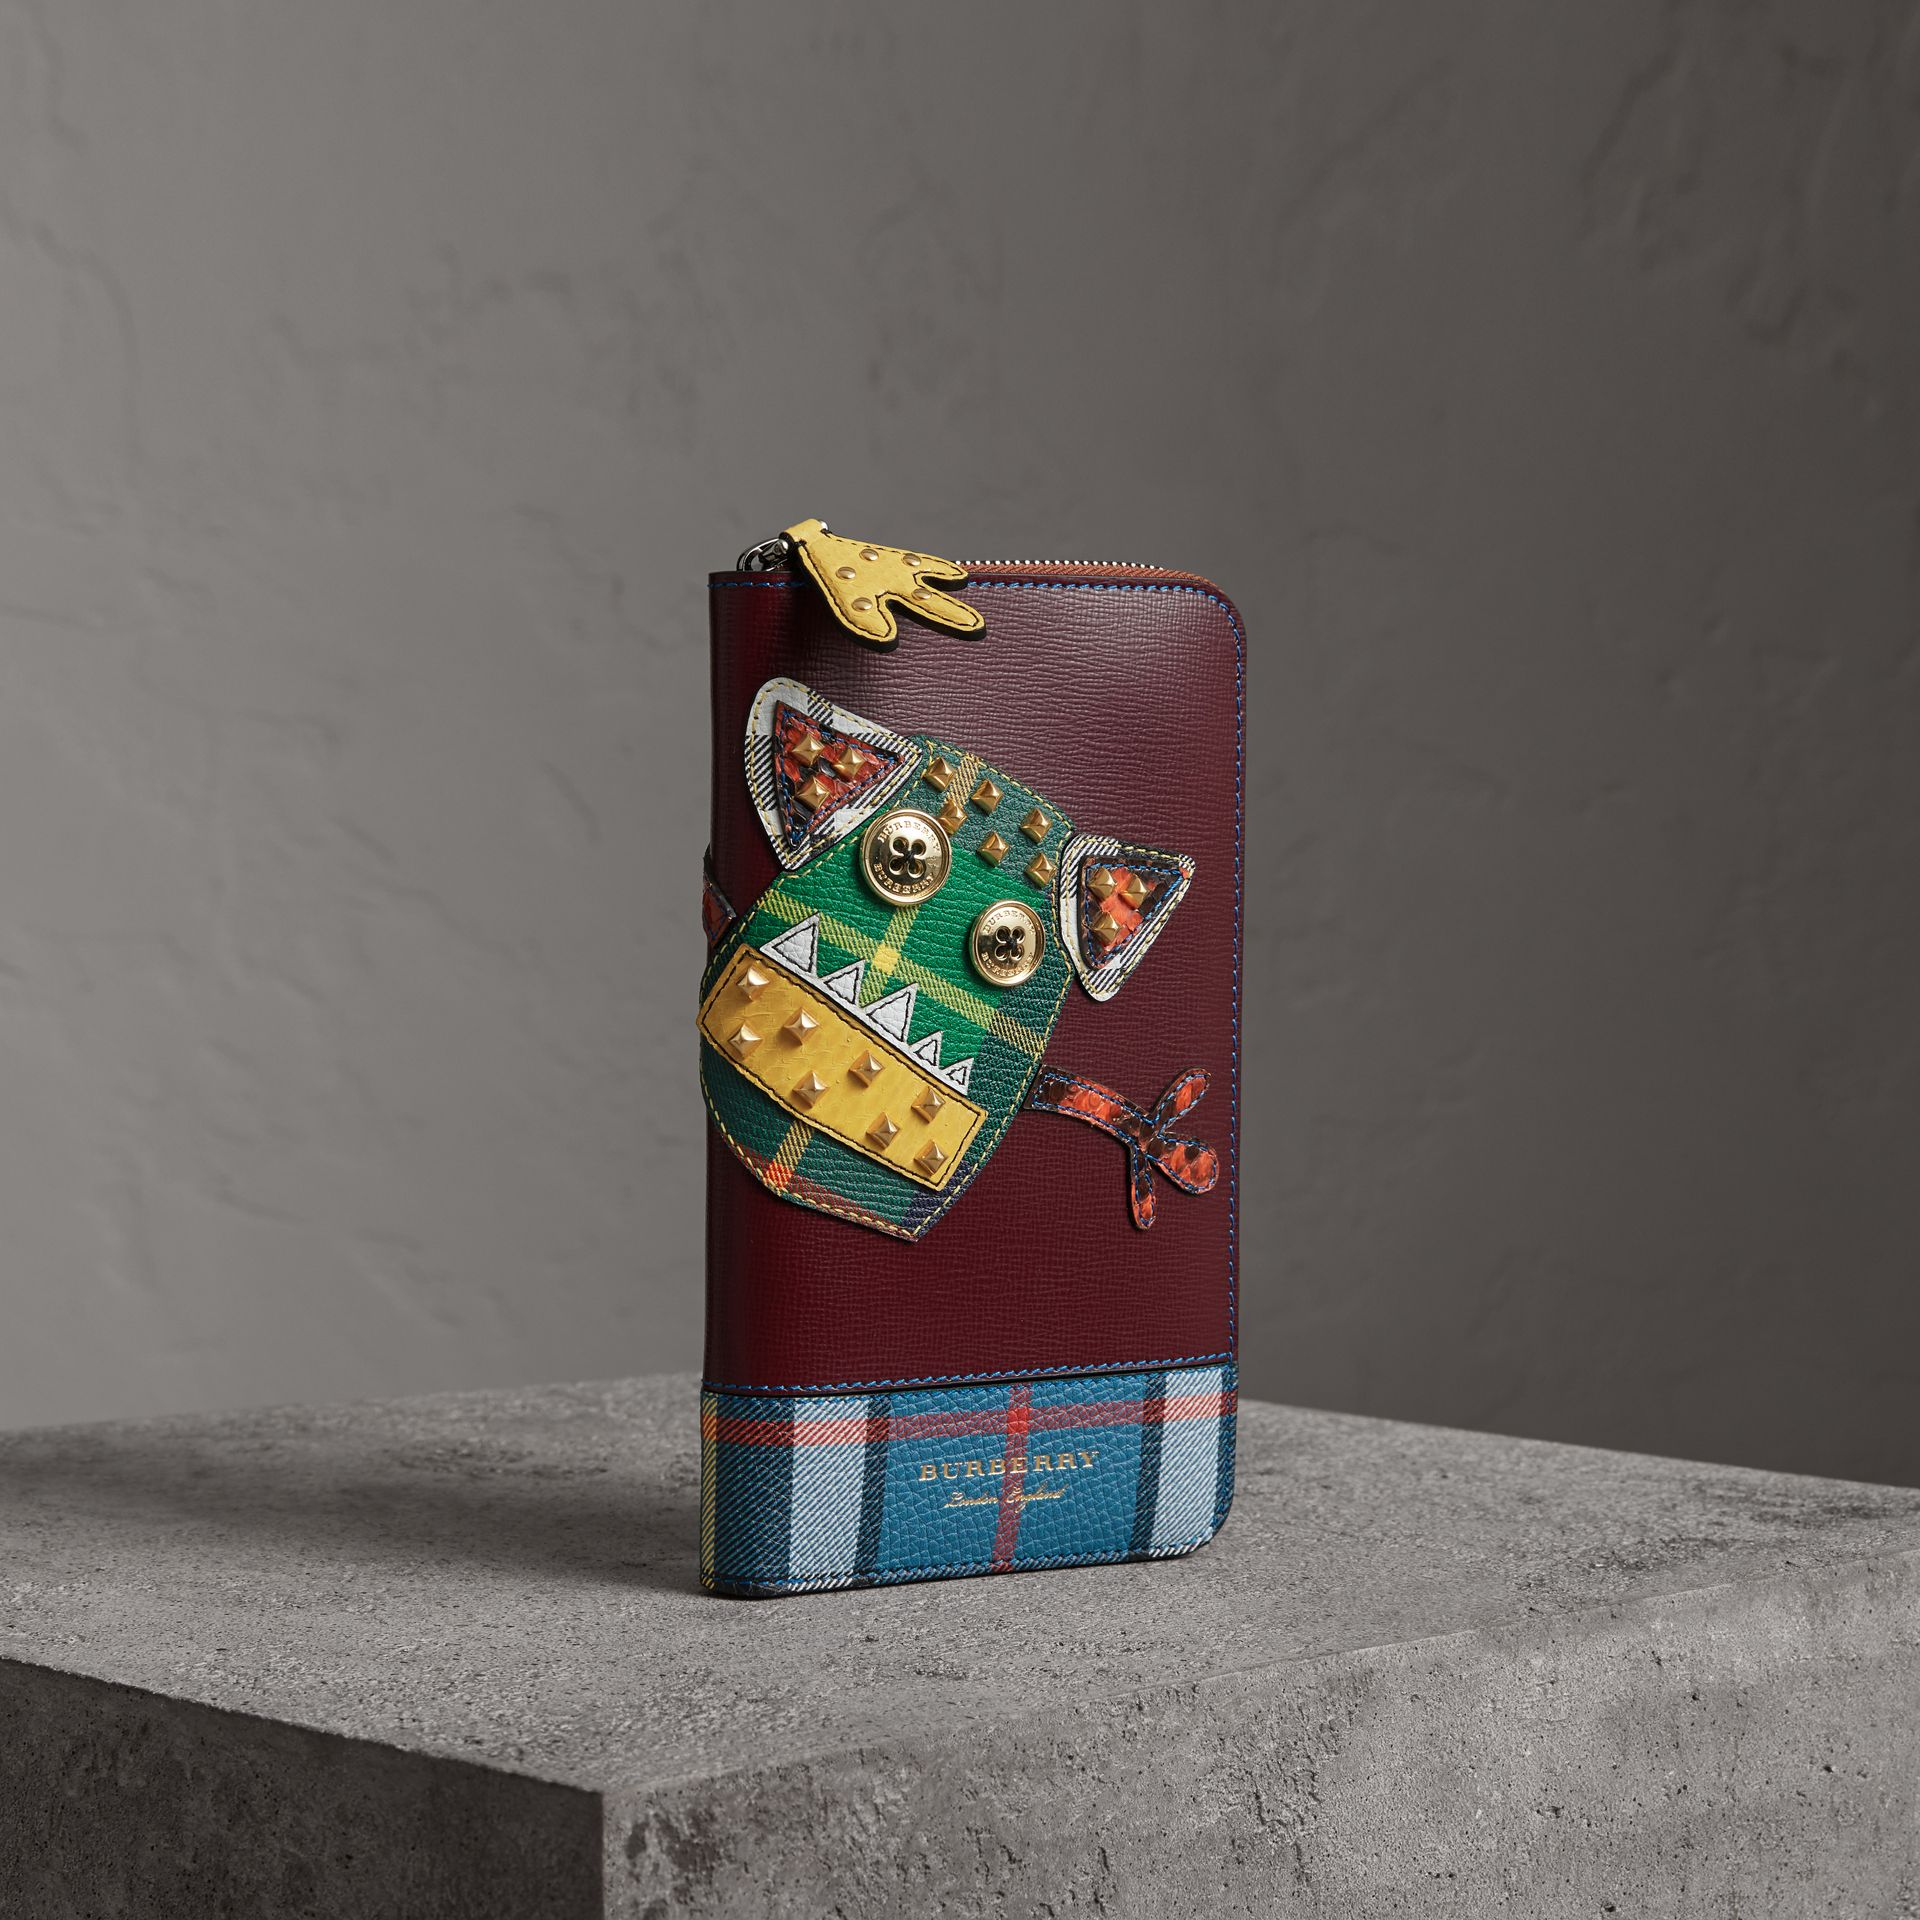 Creature Appliqué Leather Ziparound Wallet in Burgundy Red - Men | Burberry Singapore - gallery image 0